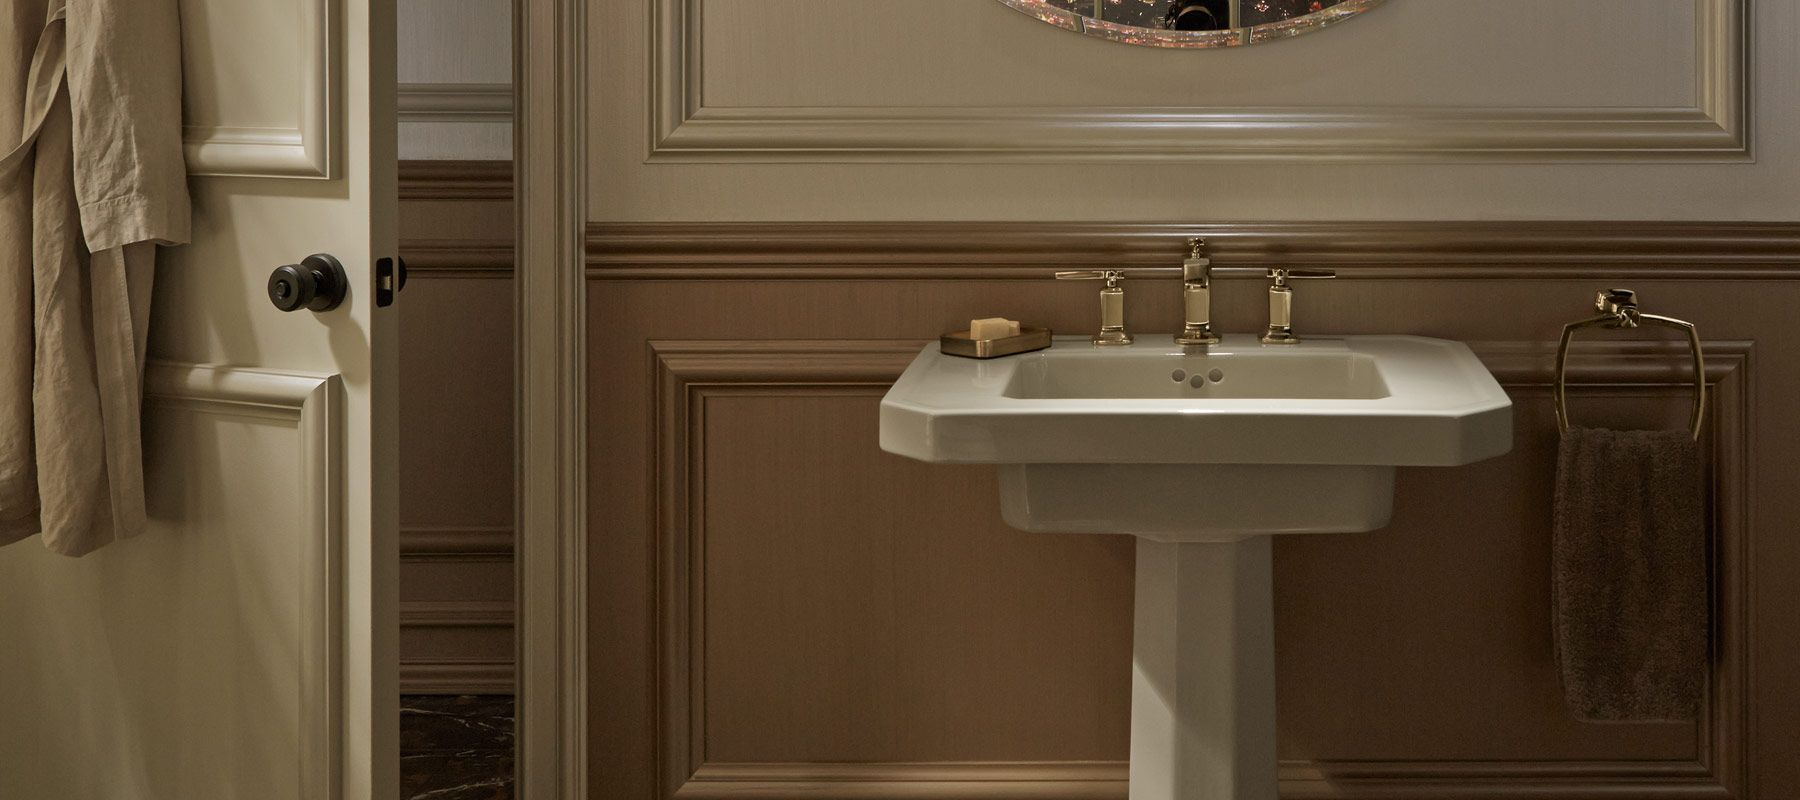 Pedestal Bathroom Sinks Bathroom KOHLER - Kohler devonshire bathroom collection